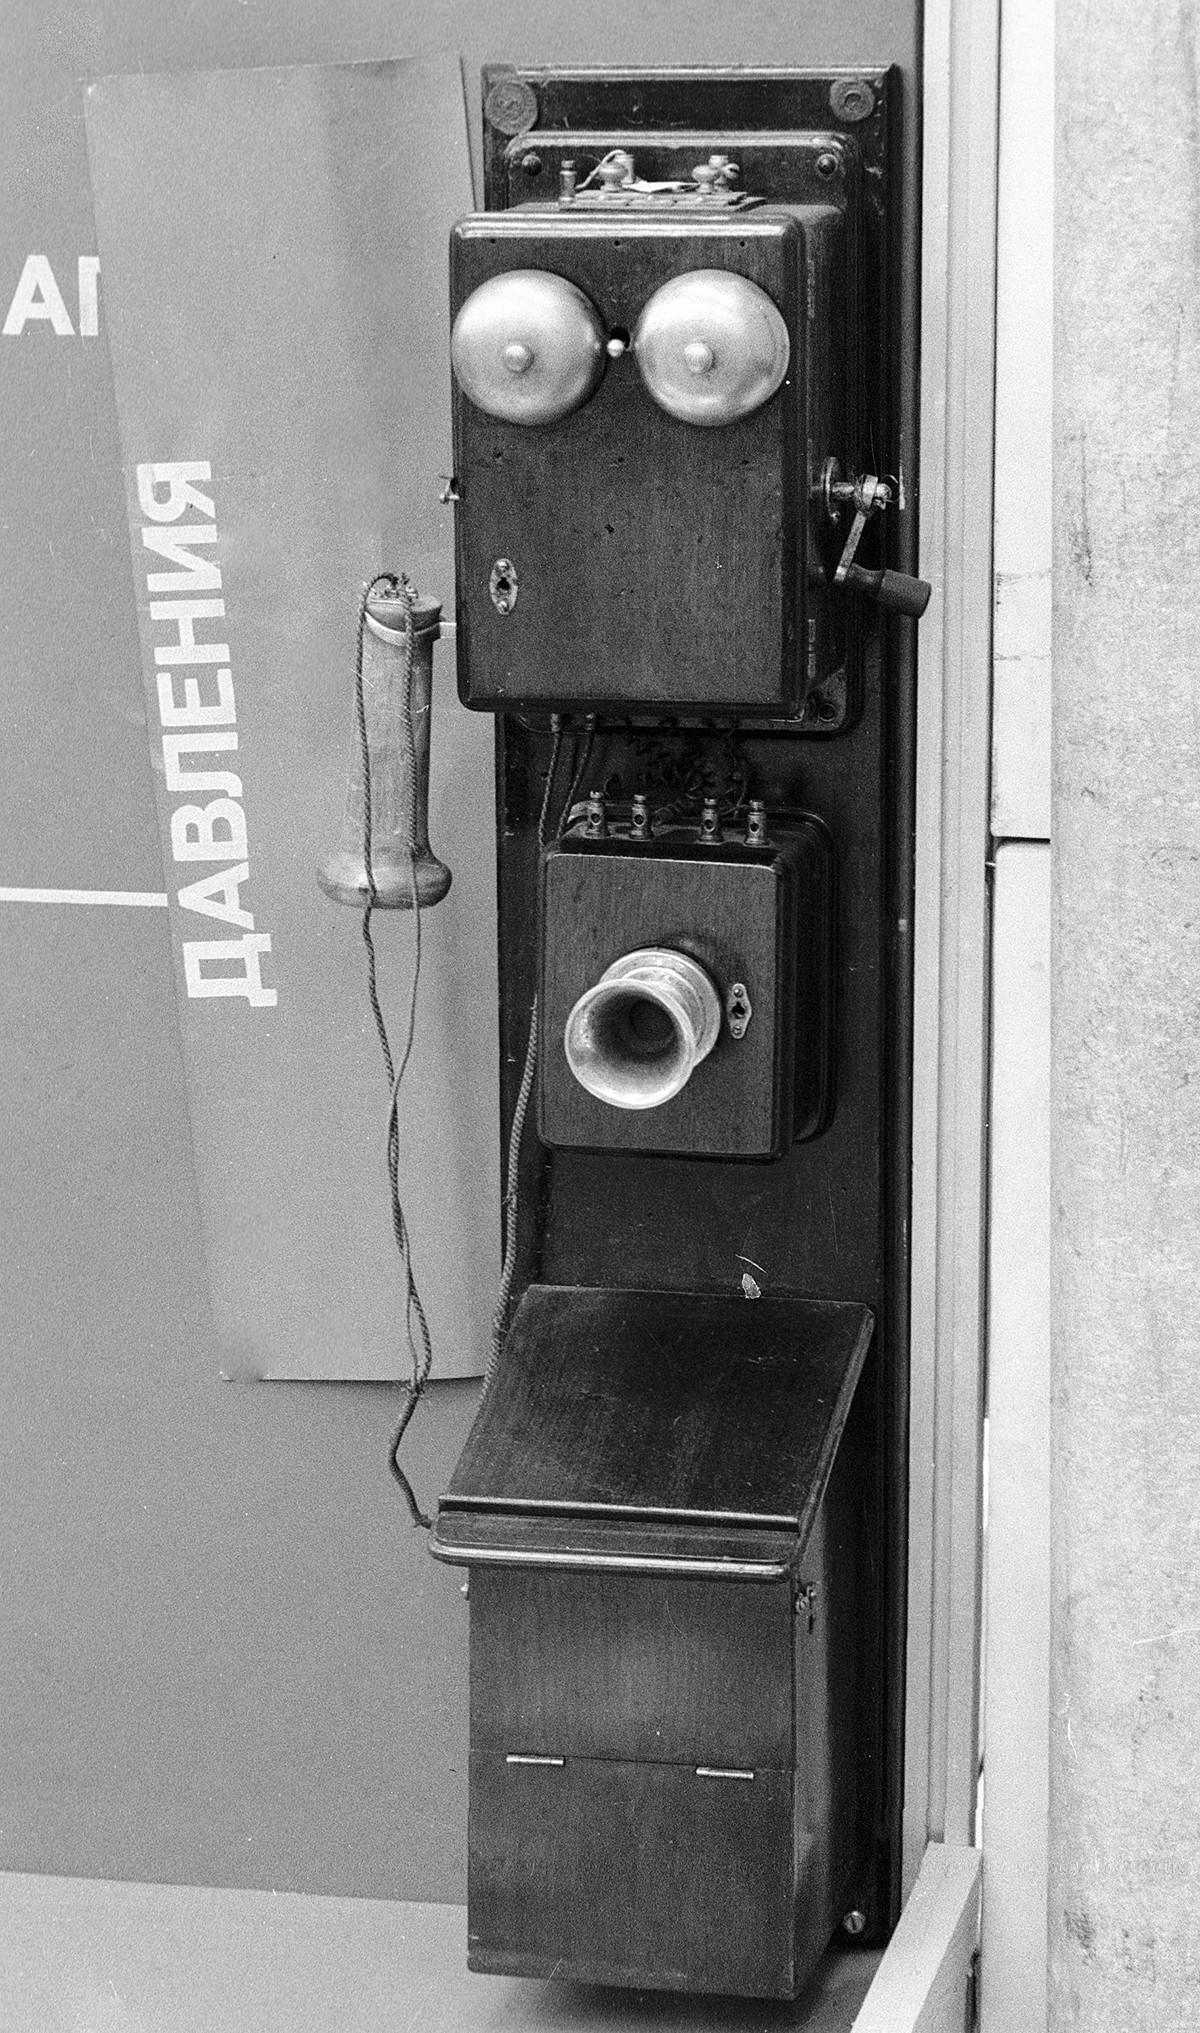 One of the first Alexander Bell's phones installed in Moscow.